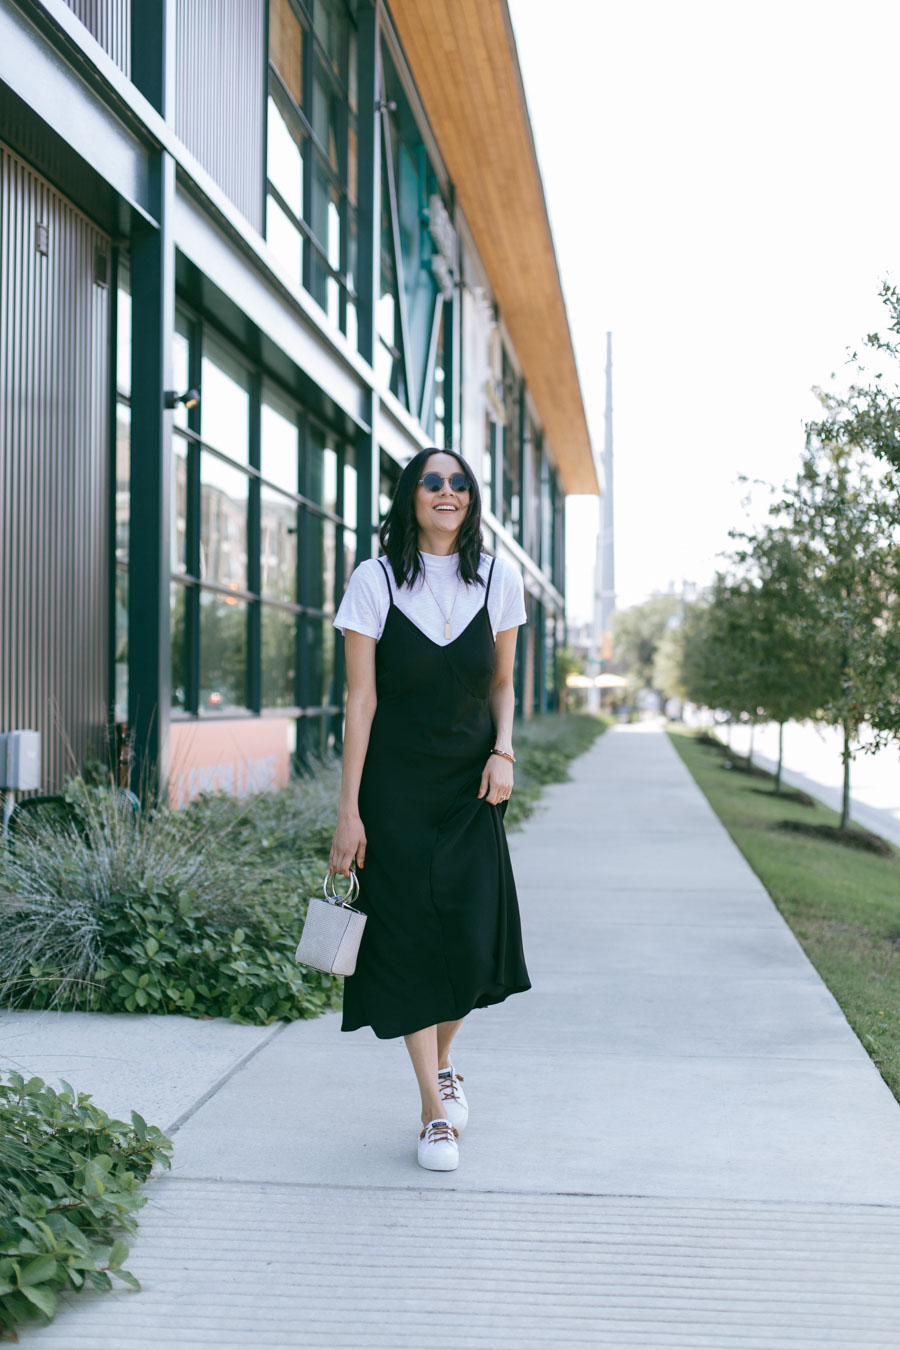 Lilly Beltran restyles a black slip dress and shares tips for being fashionable on a budget